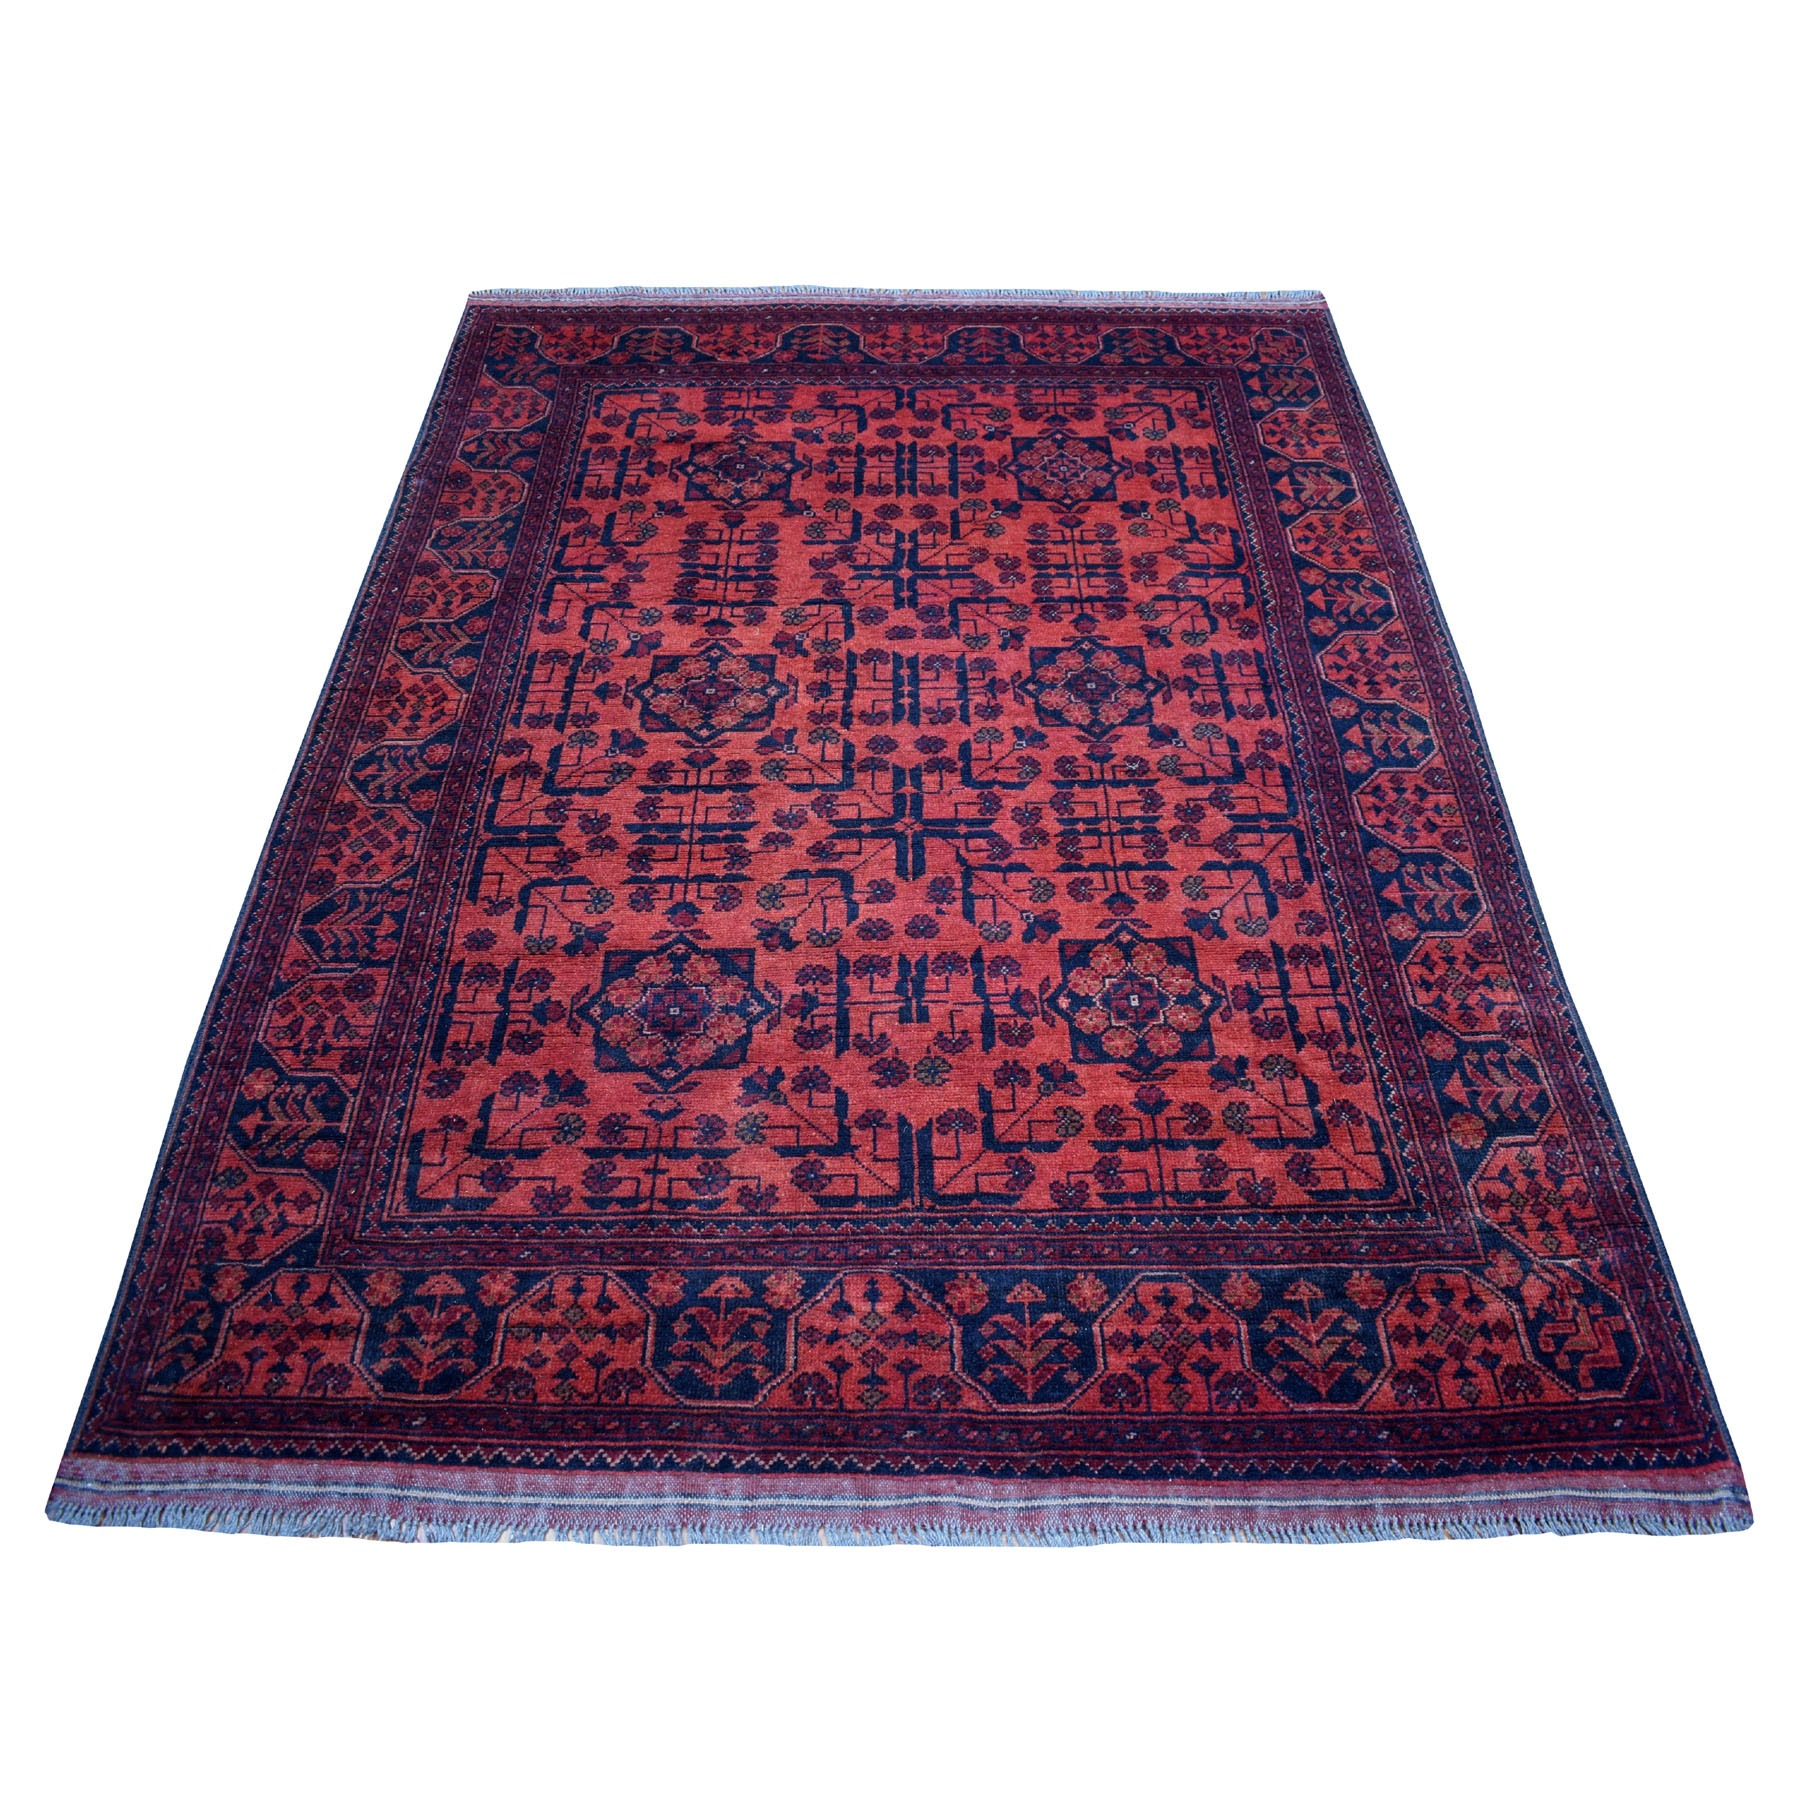 "4'10""x6'6"" Deep and Saturated Red Geometric Afghan Andkhoy Pure Wool Hand Woven Oriental Rug"